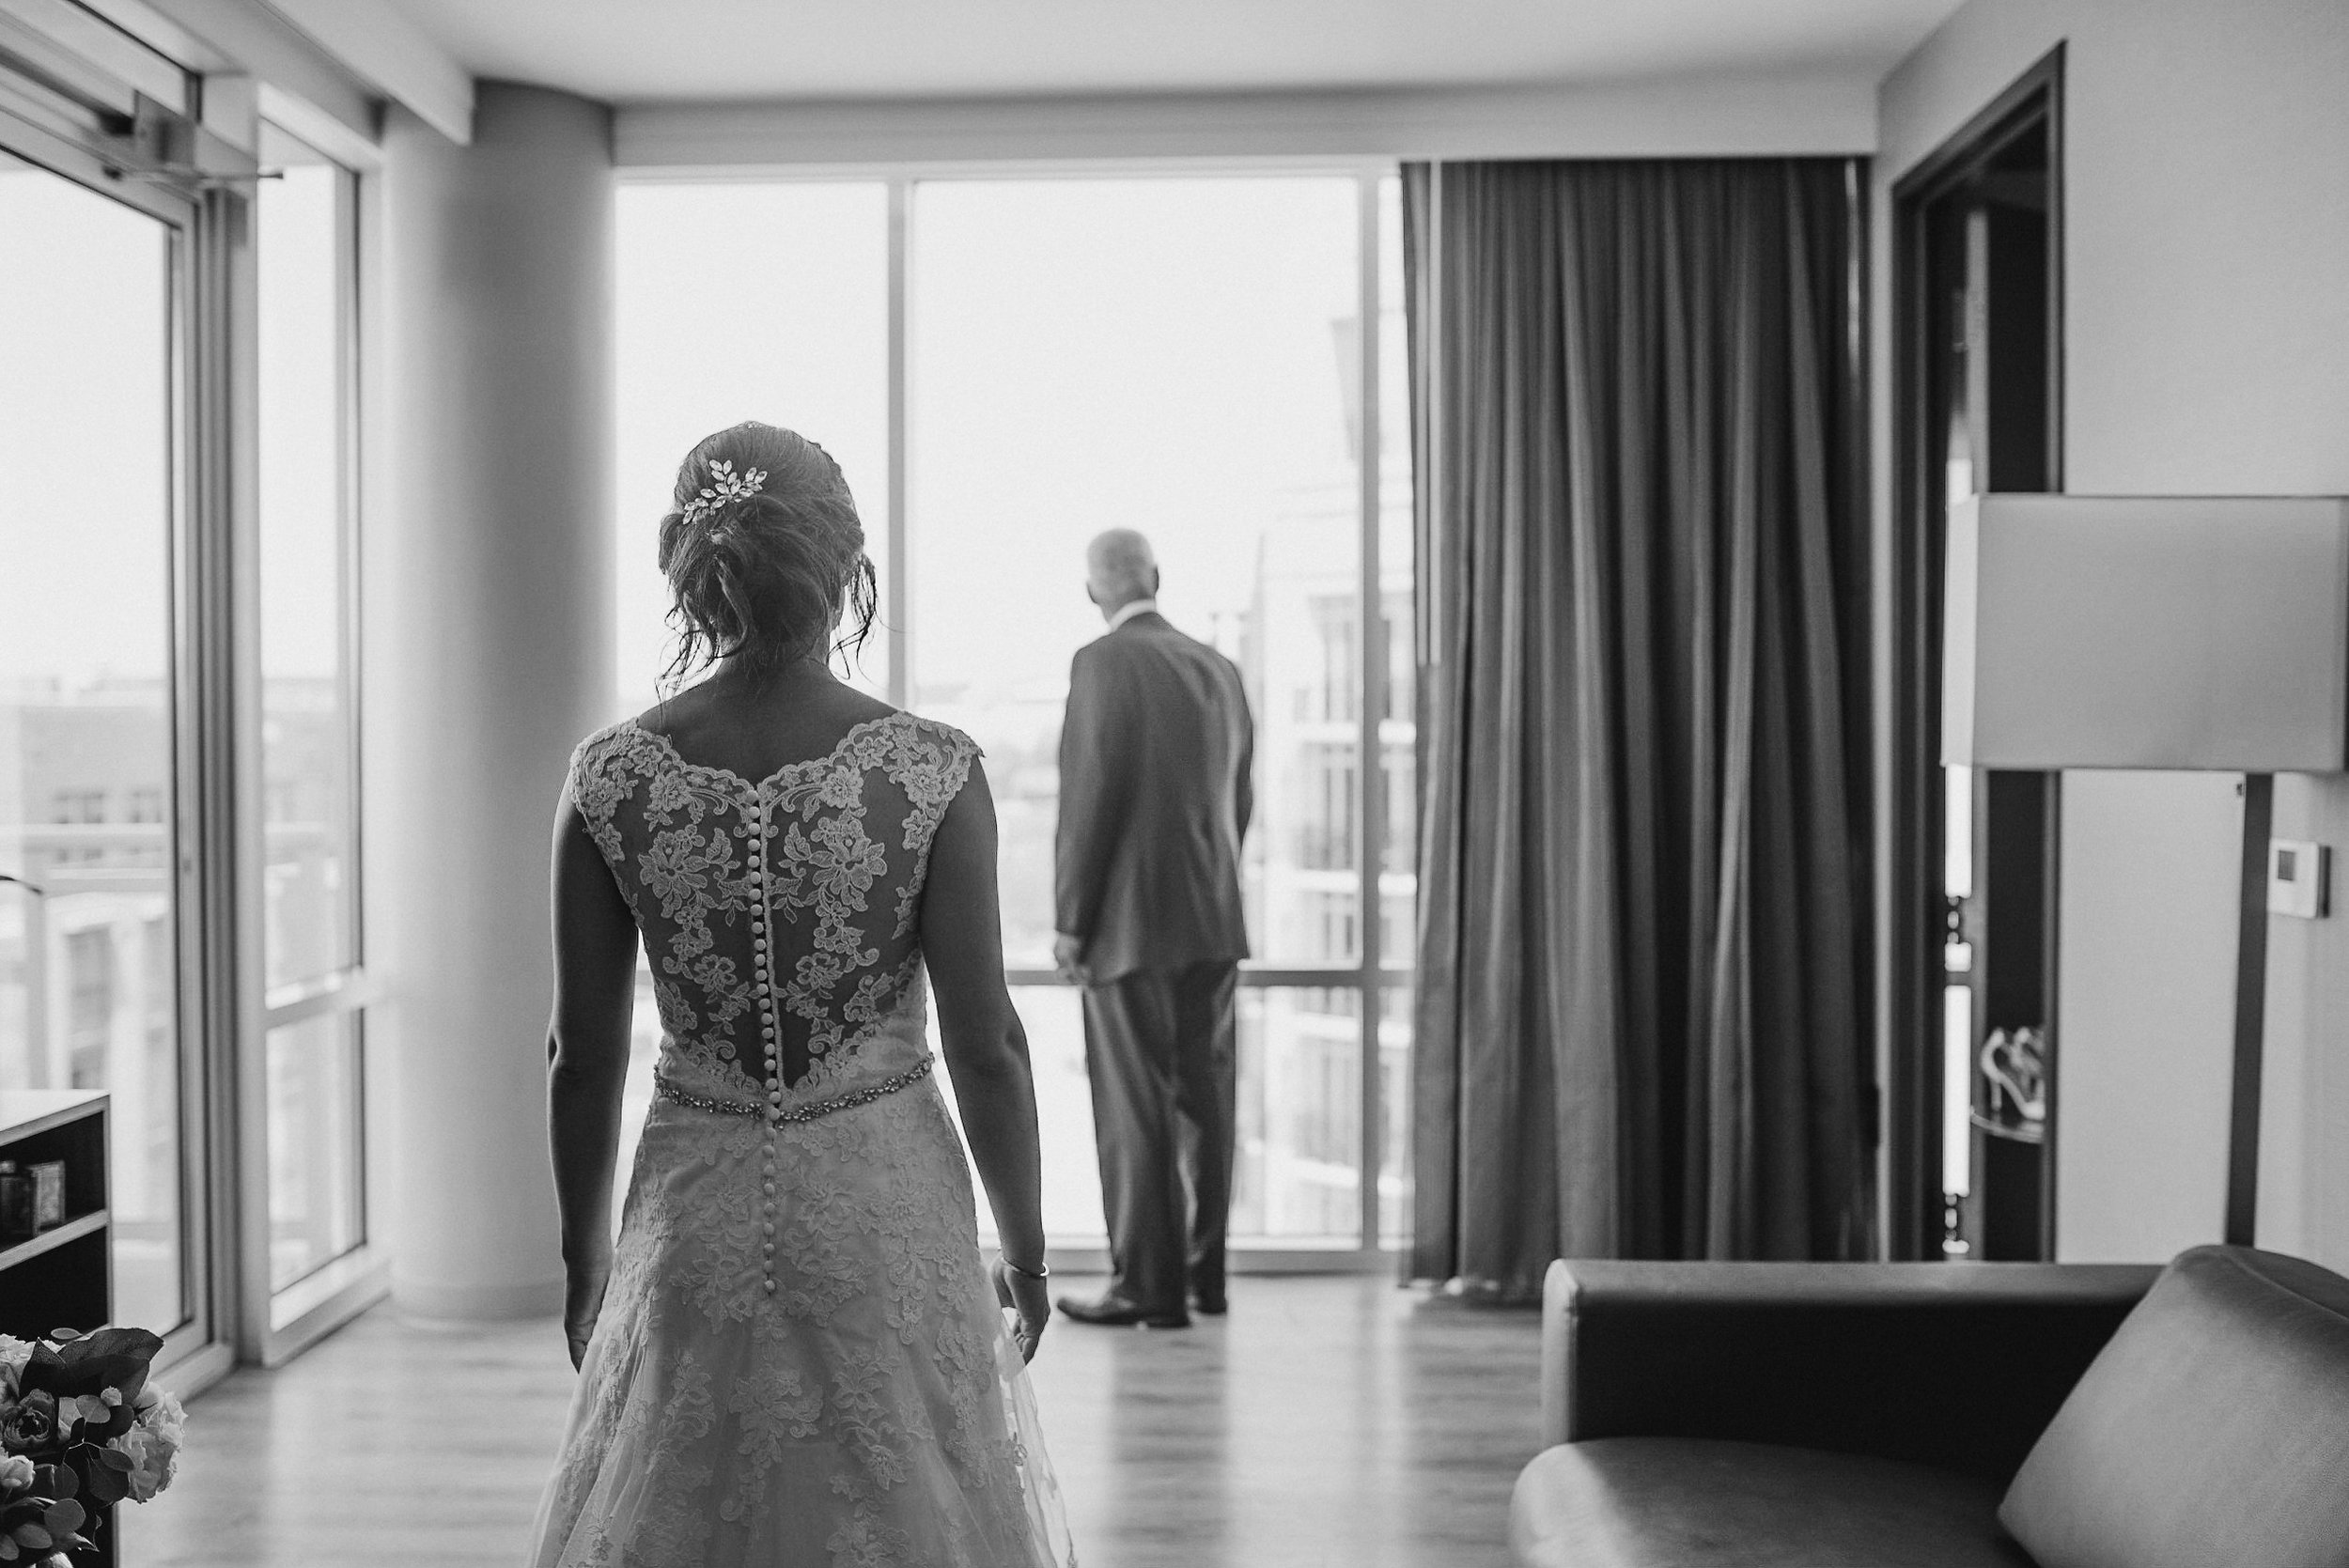 Bride and father in black and white